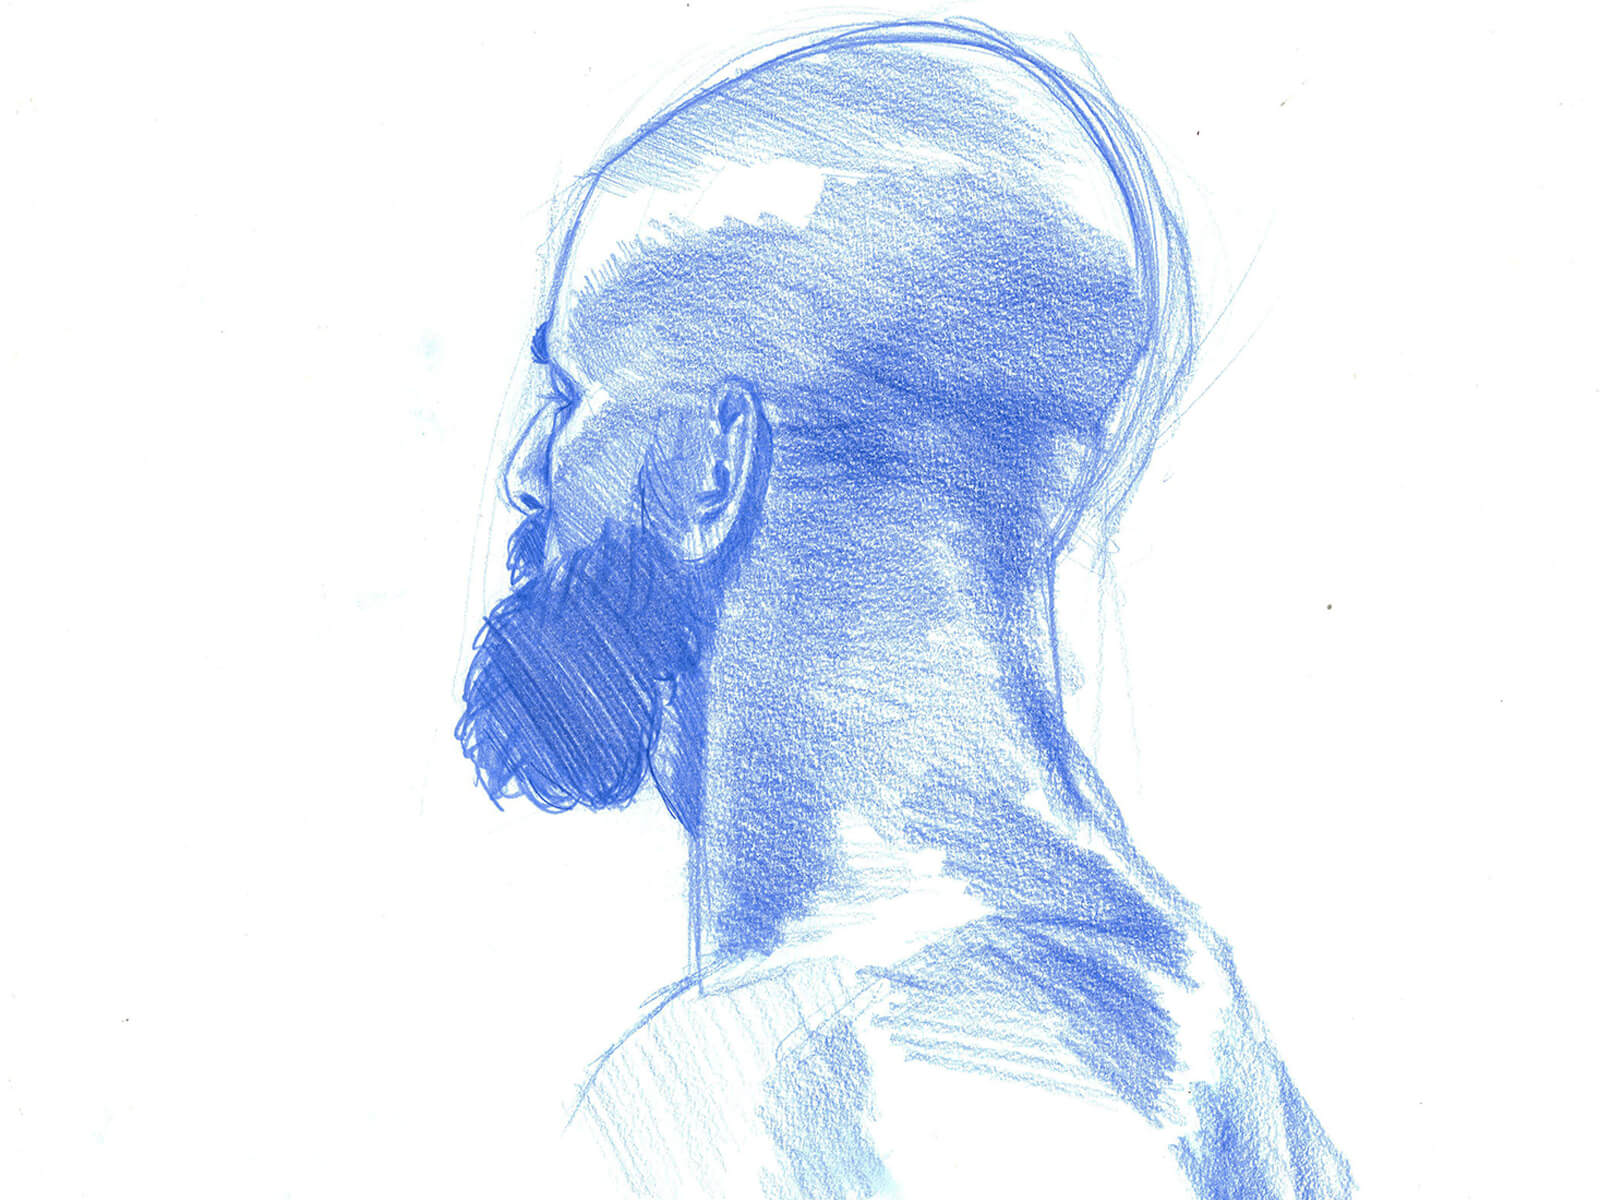 drawing of a bald man with a dark beard